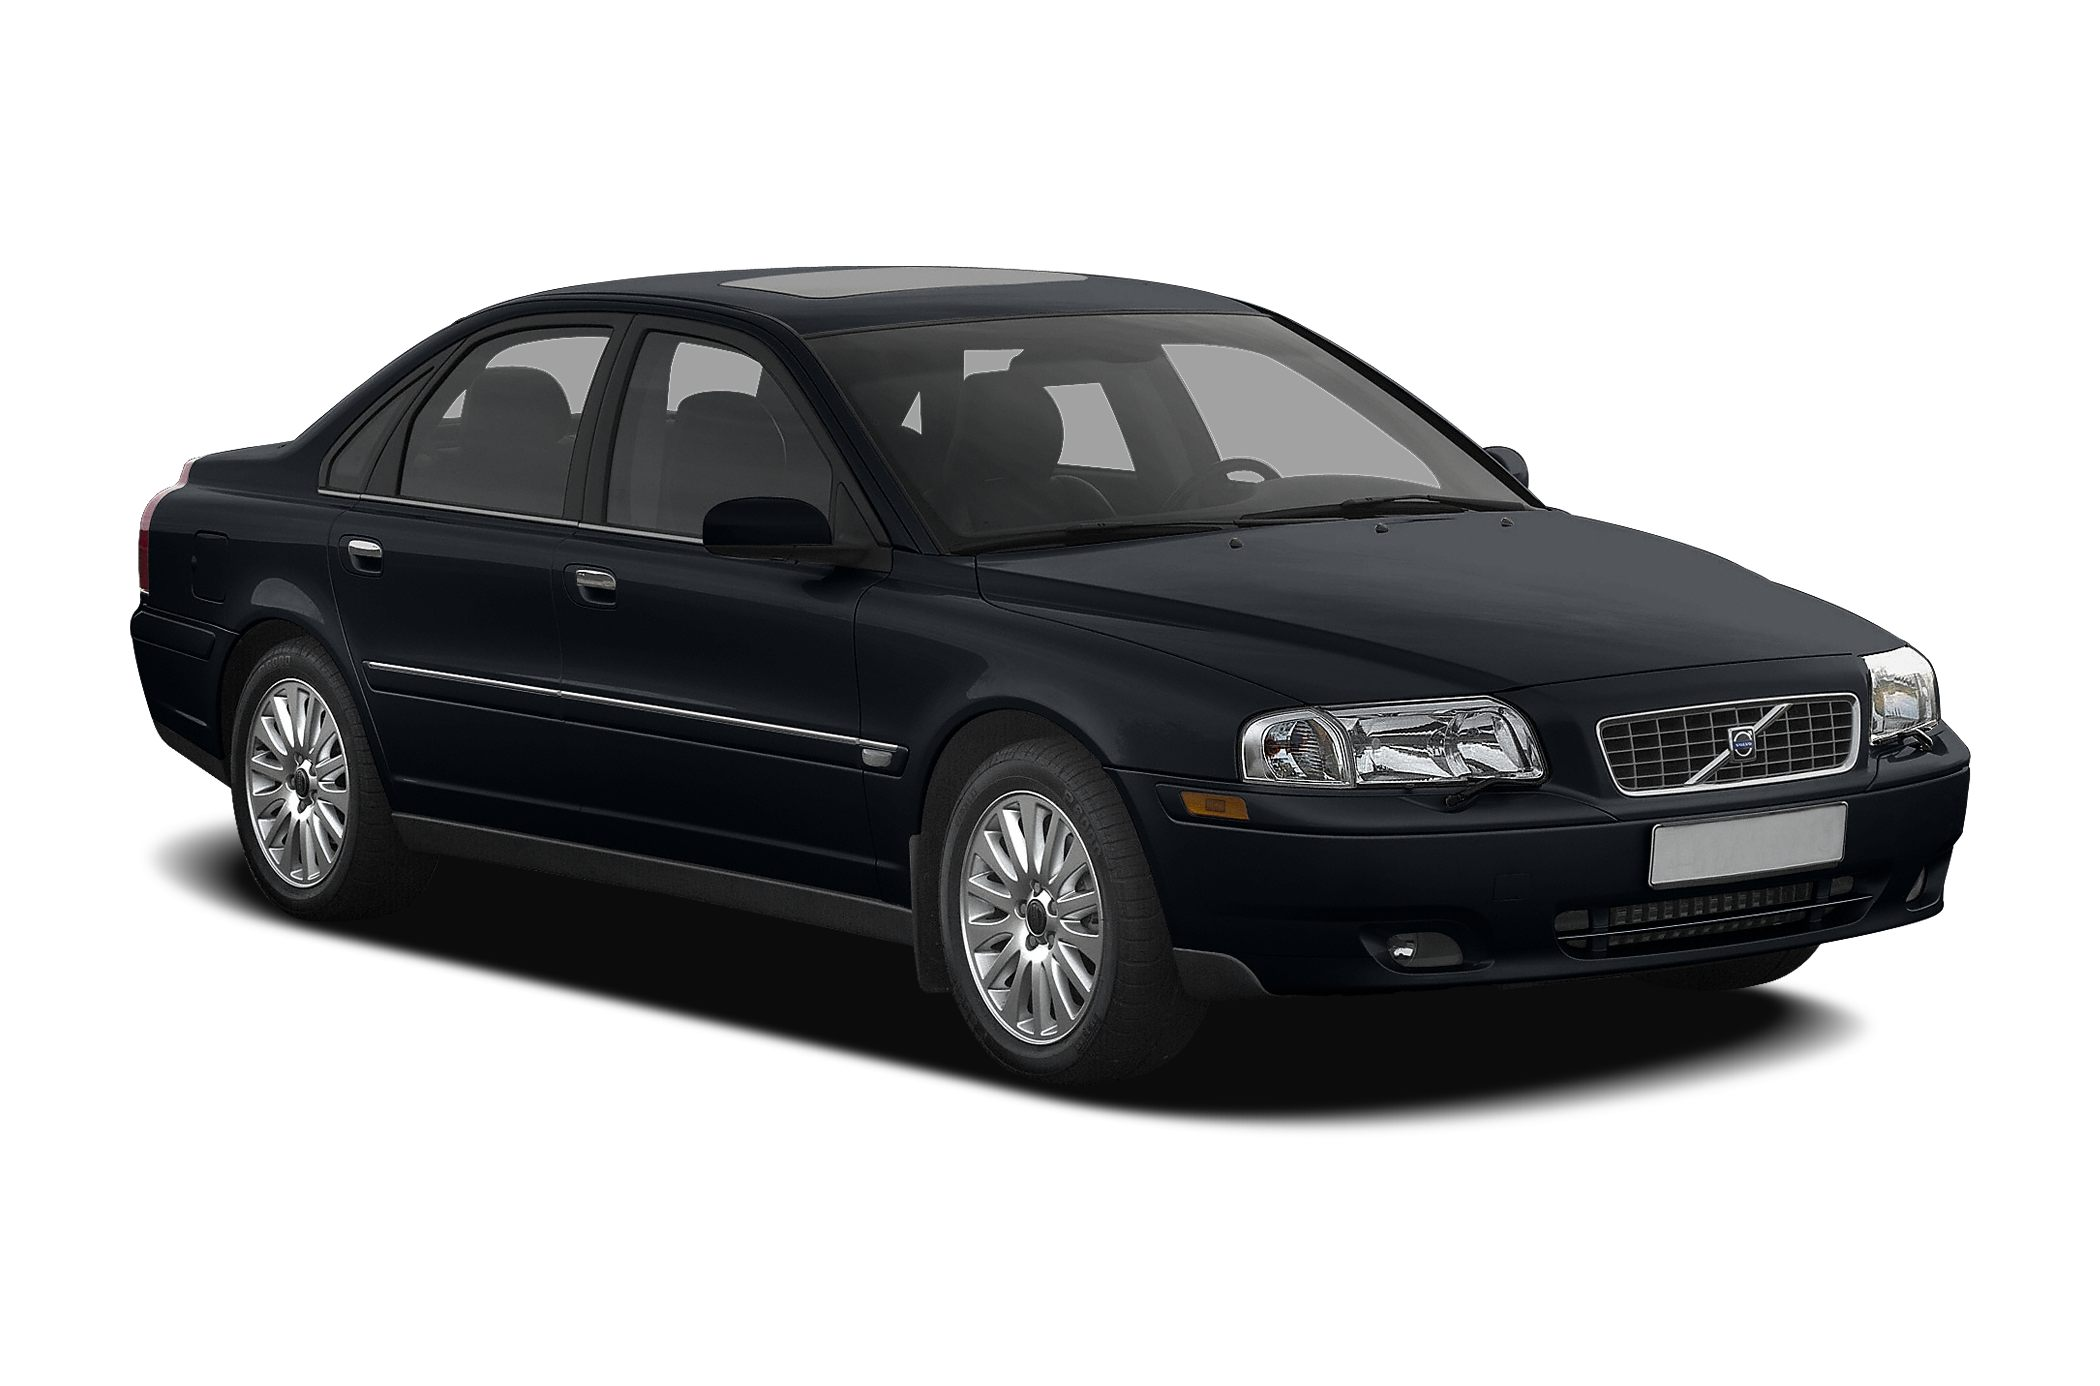 2004 Volvo S80